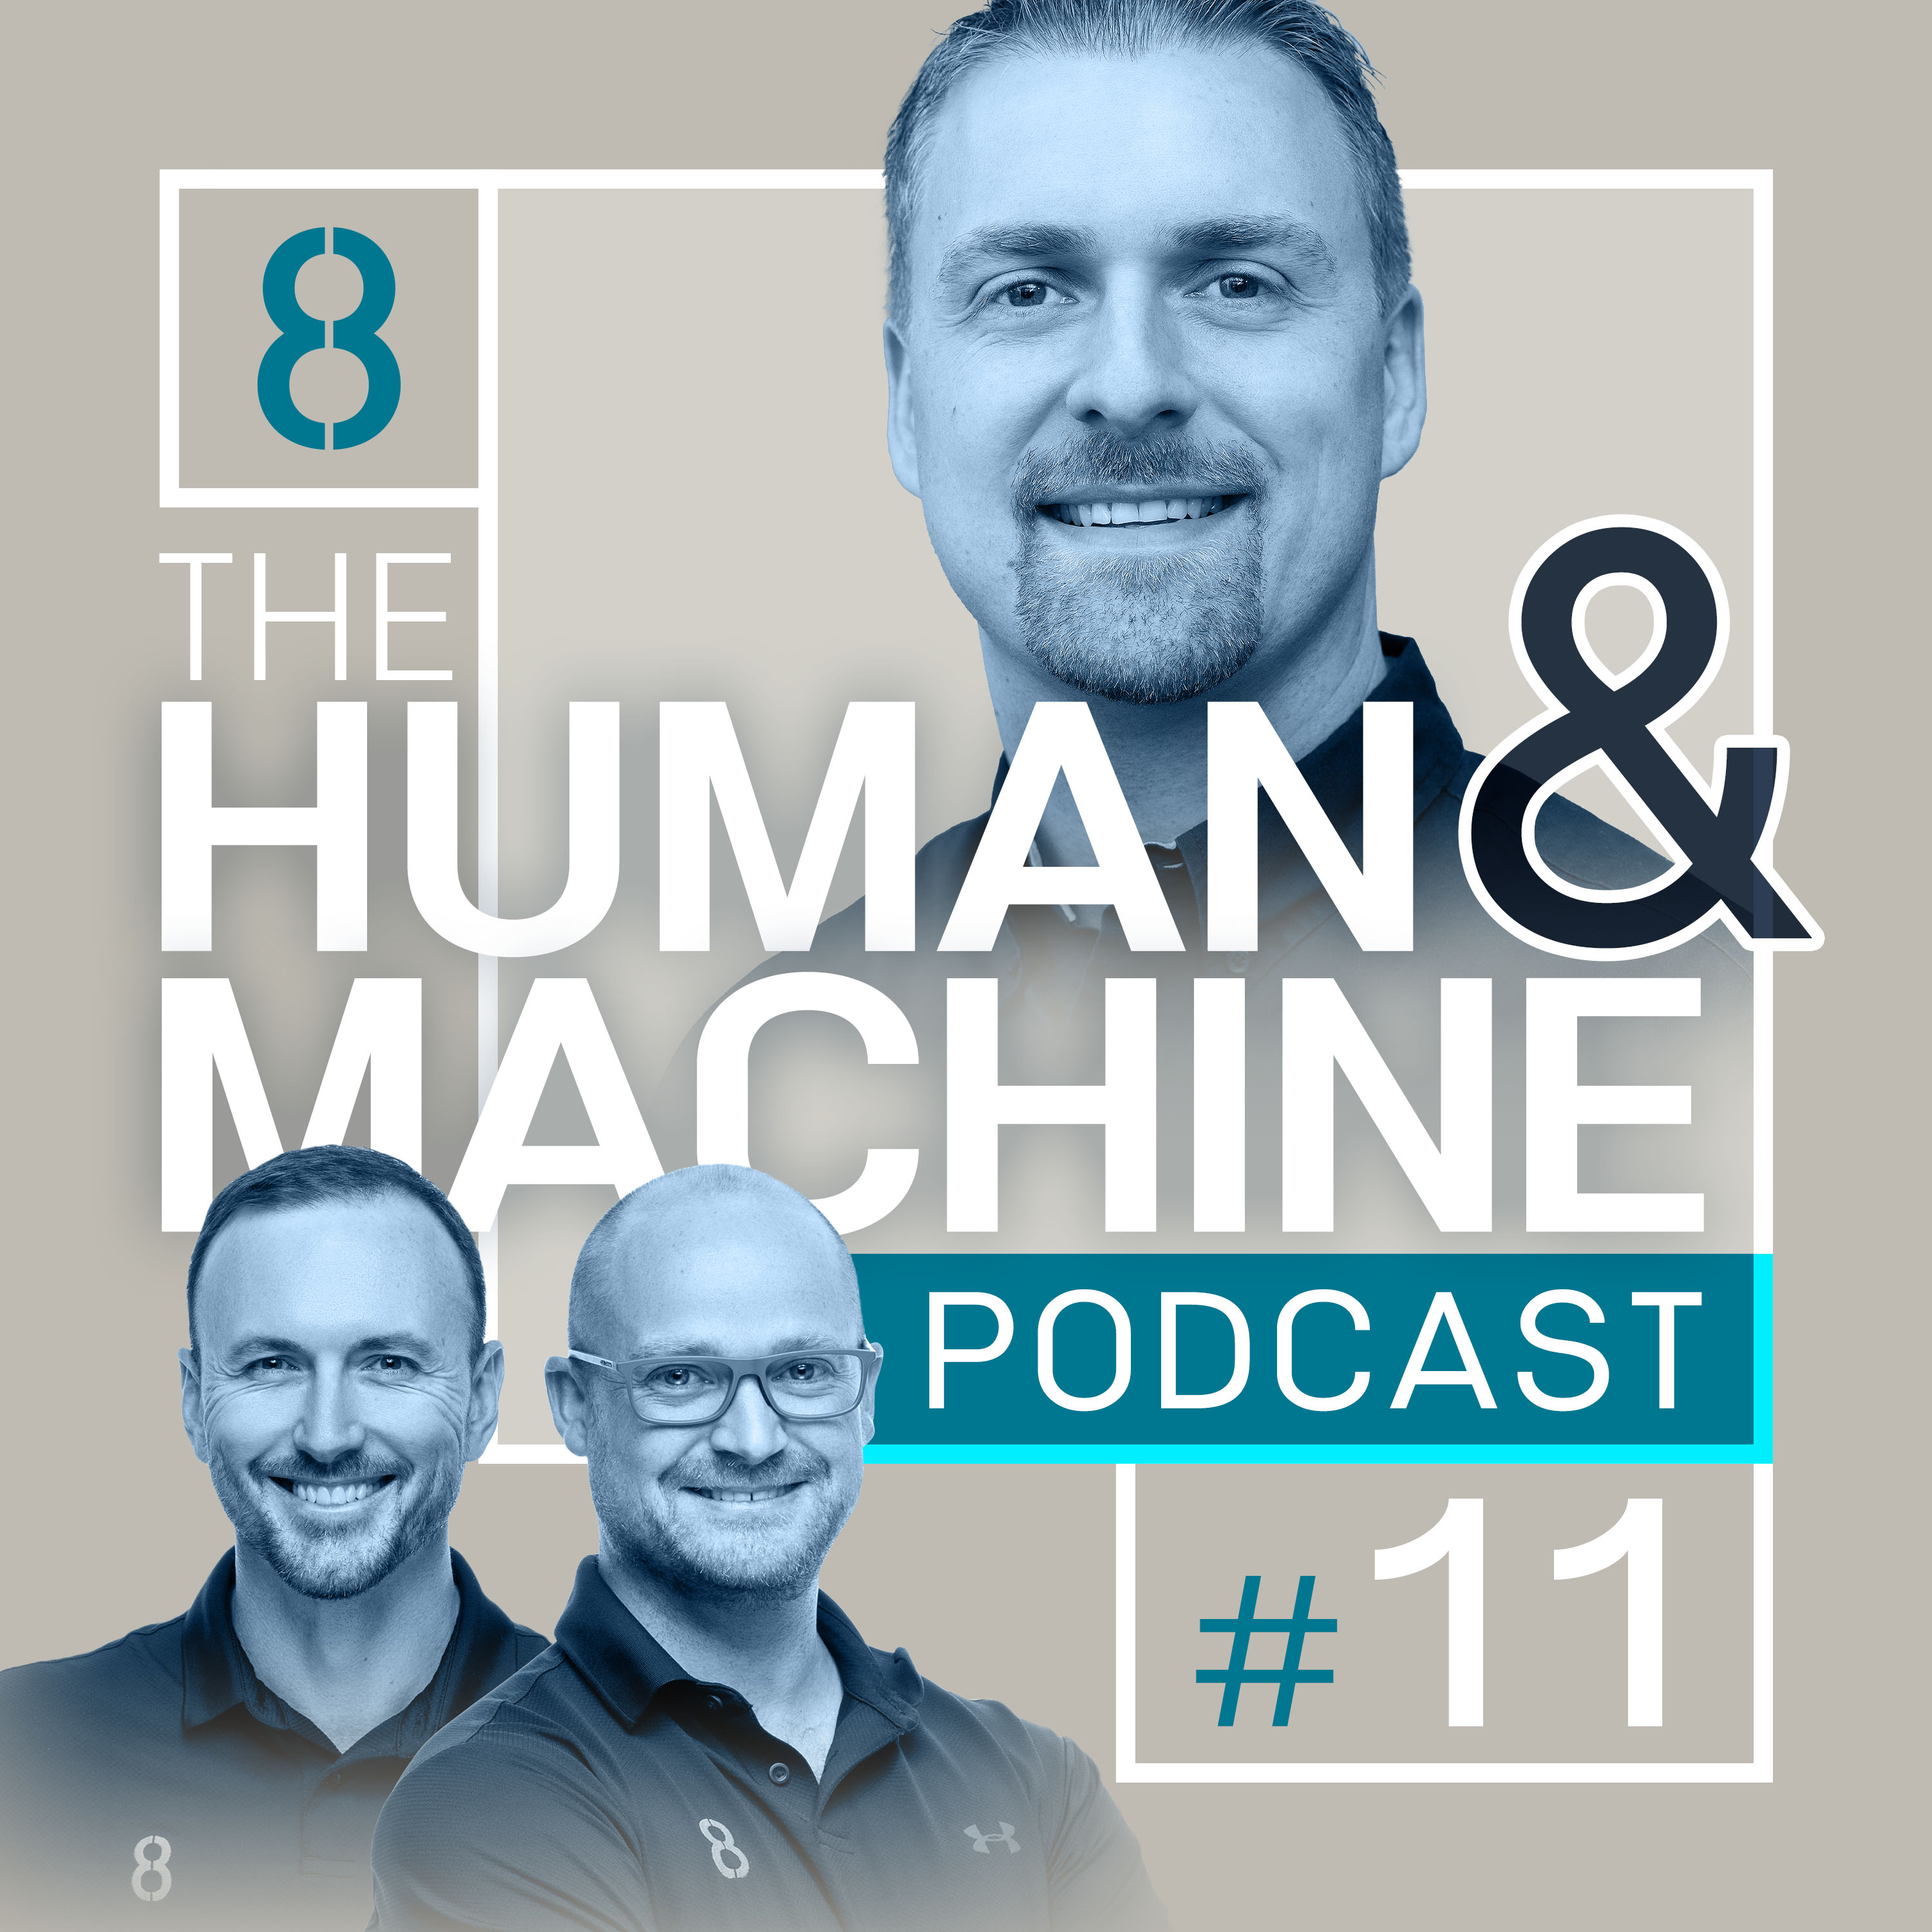 Ep 11 l Thanks to bowling. A conversation with Travis Cox from Inductive Automation